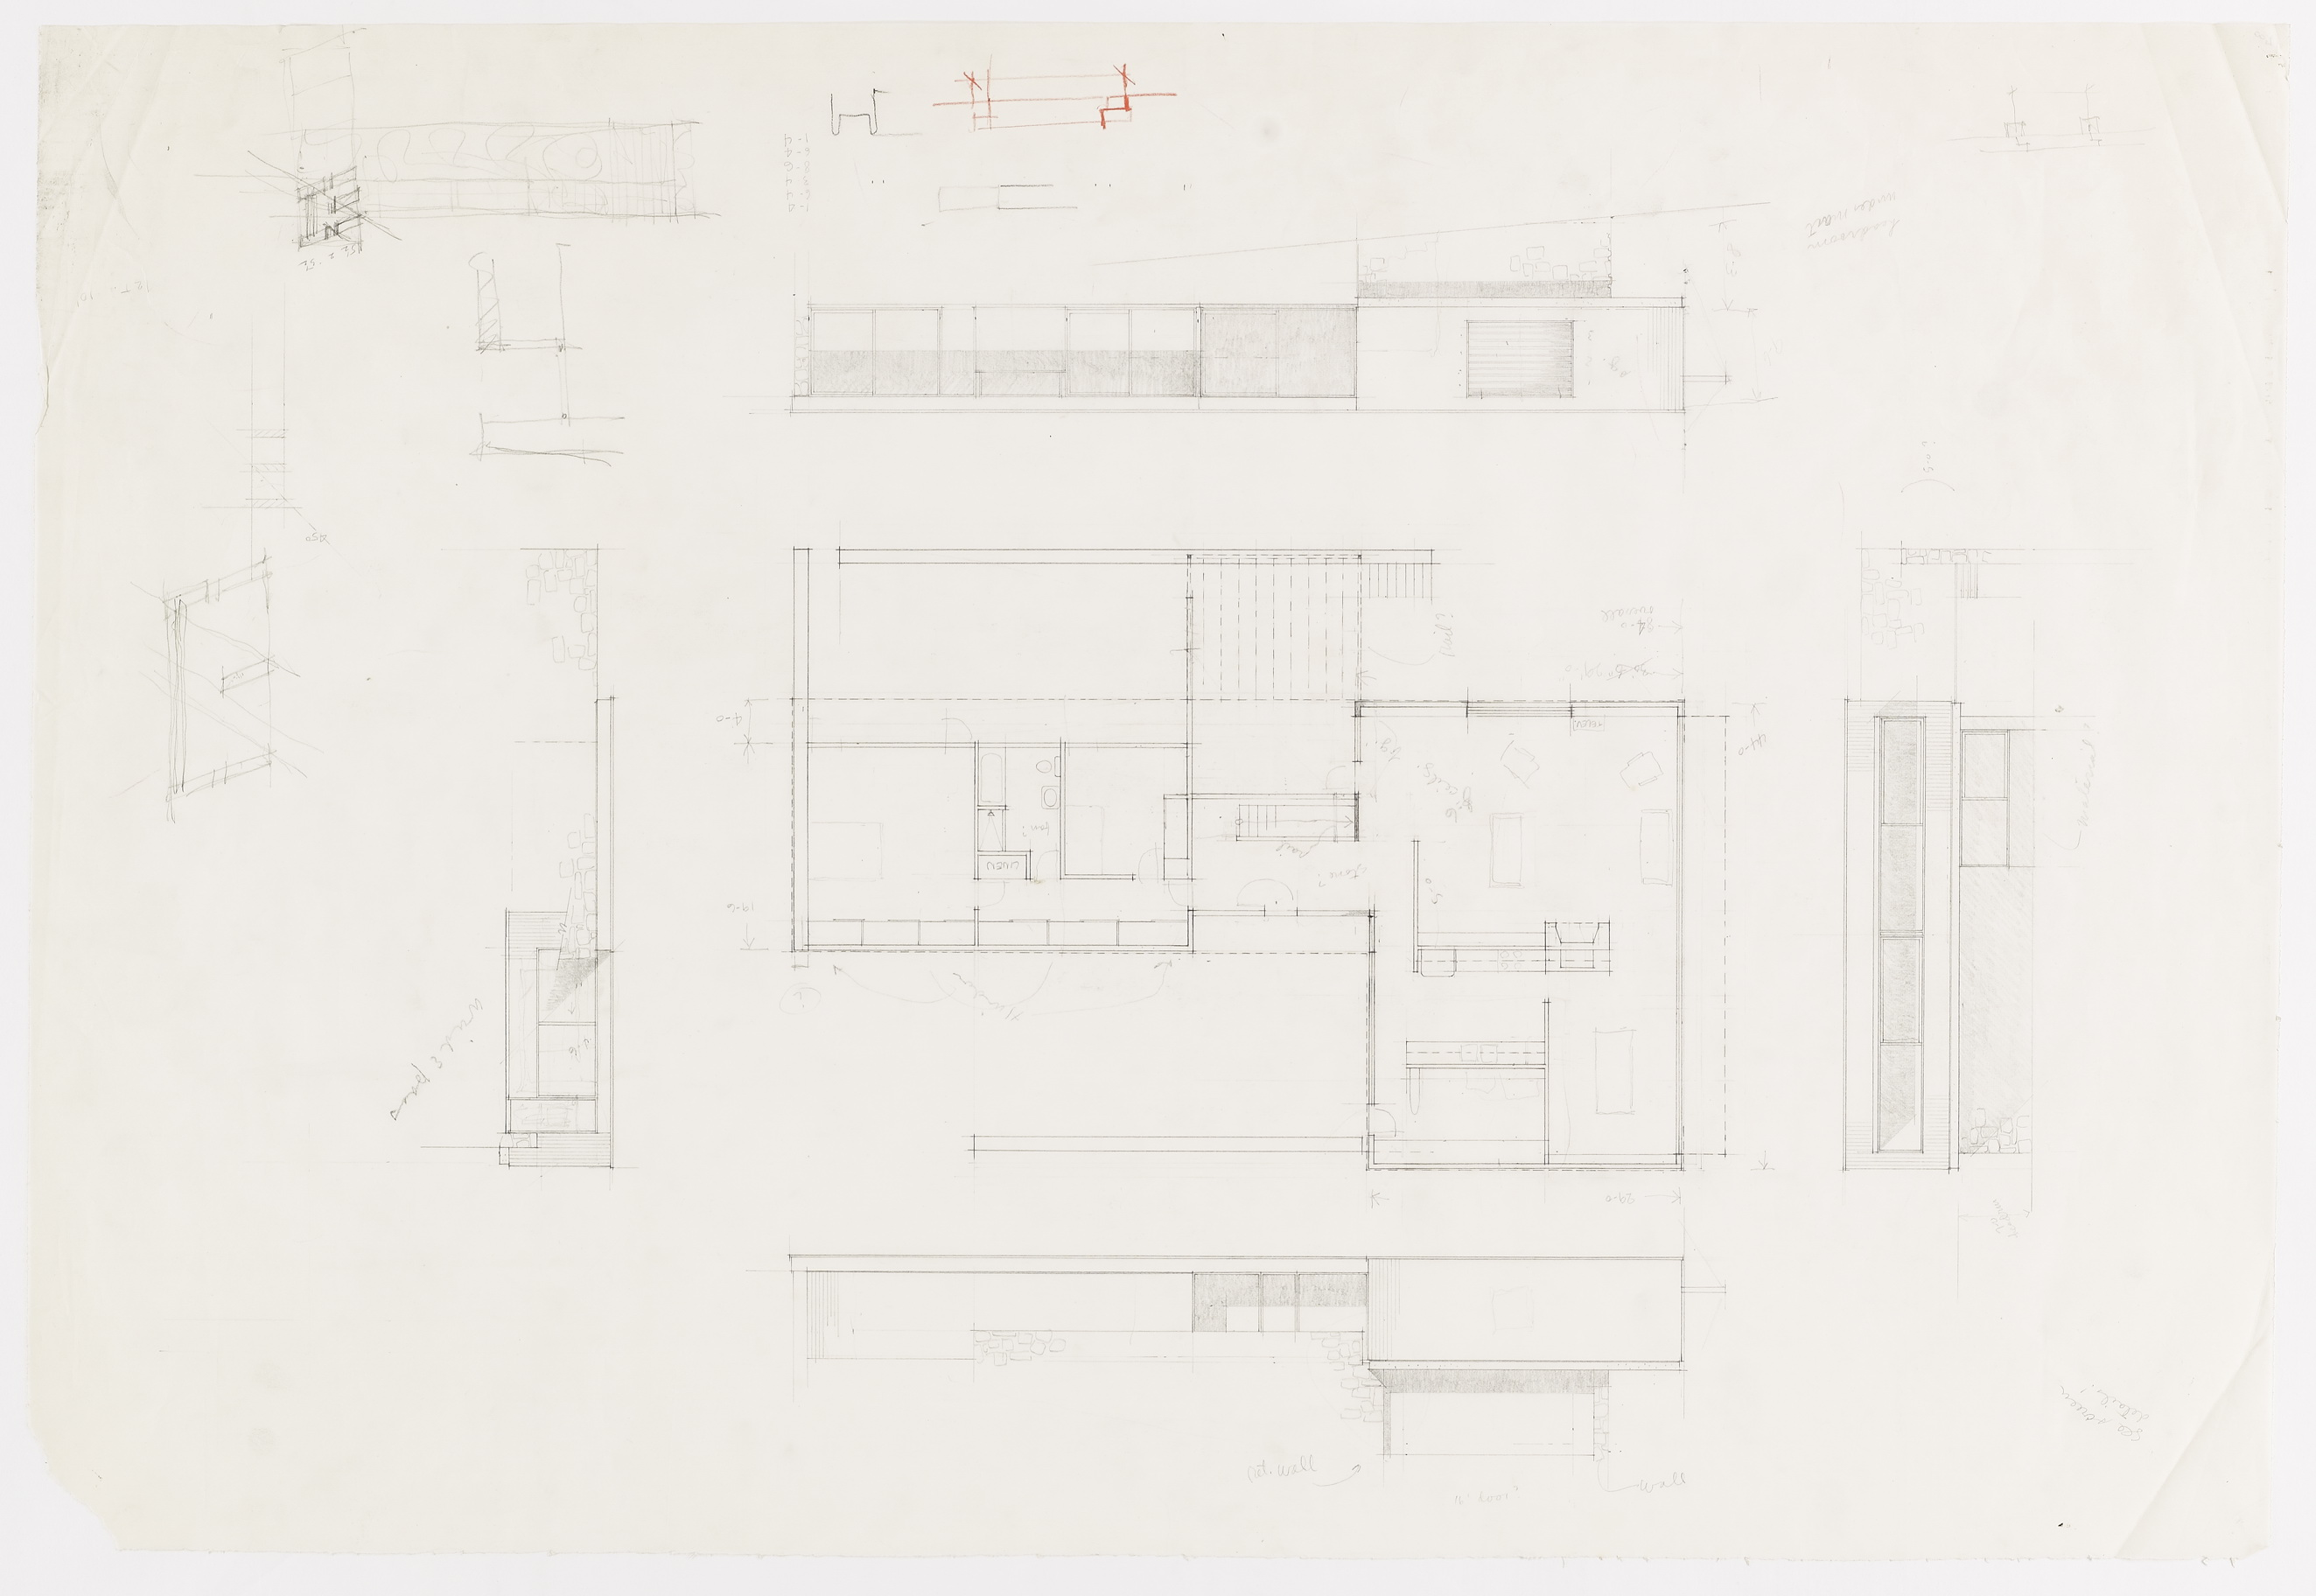 Click to select: Plan and Elevations (preliminary drawing)